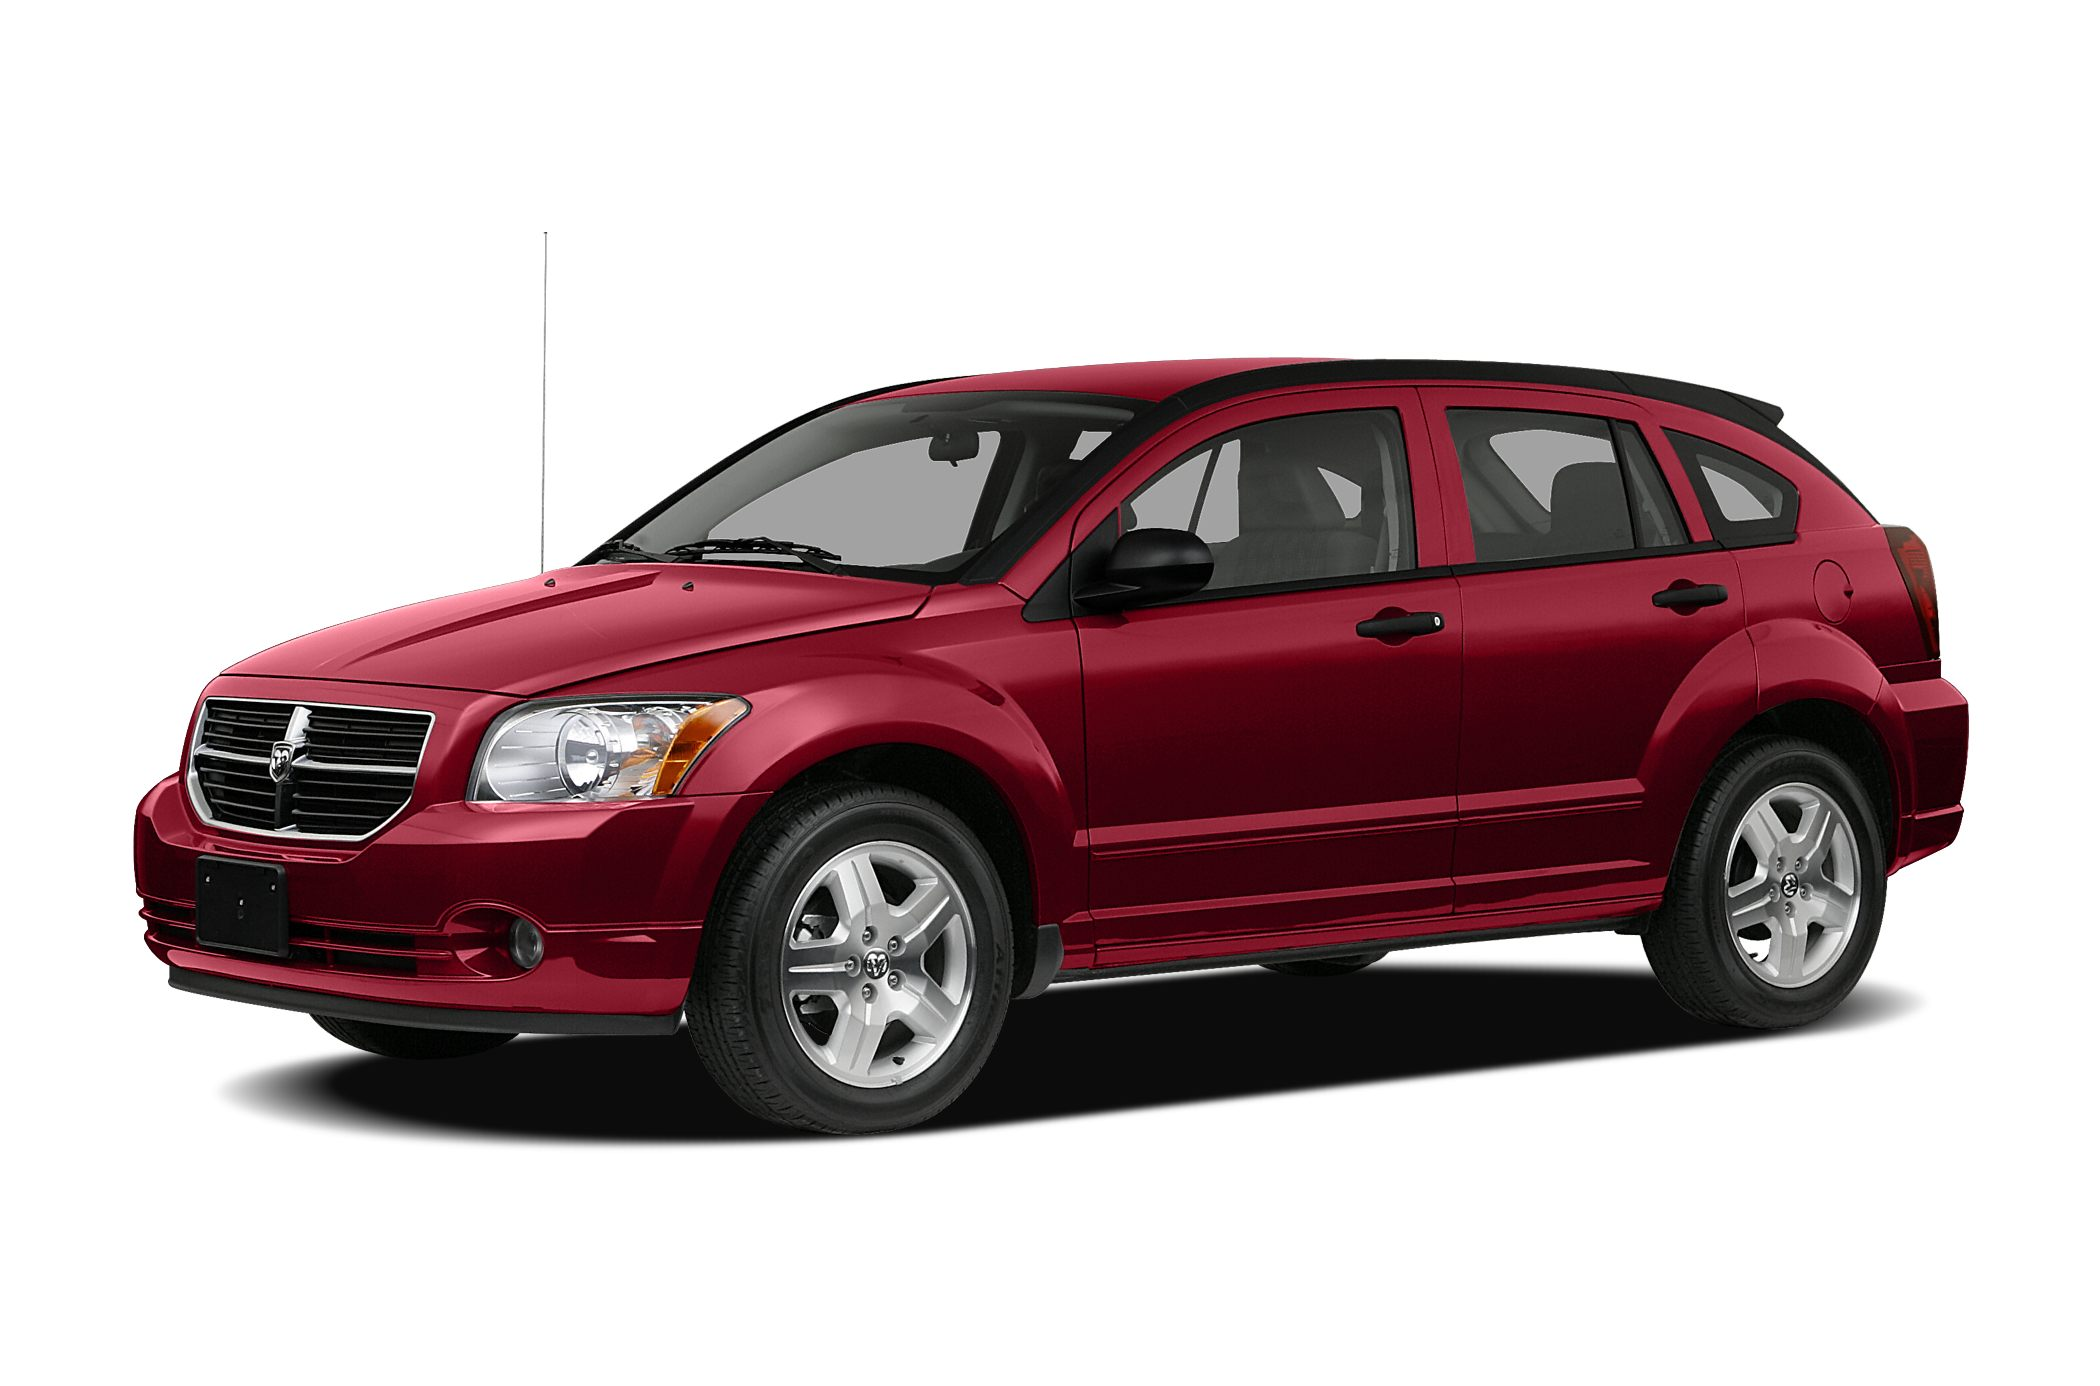 2008 Dodge Caliber SXT Hatchback for sale in Carthage for $0 with 127,662 miles